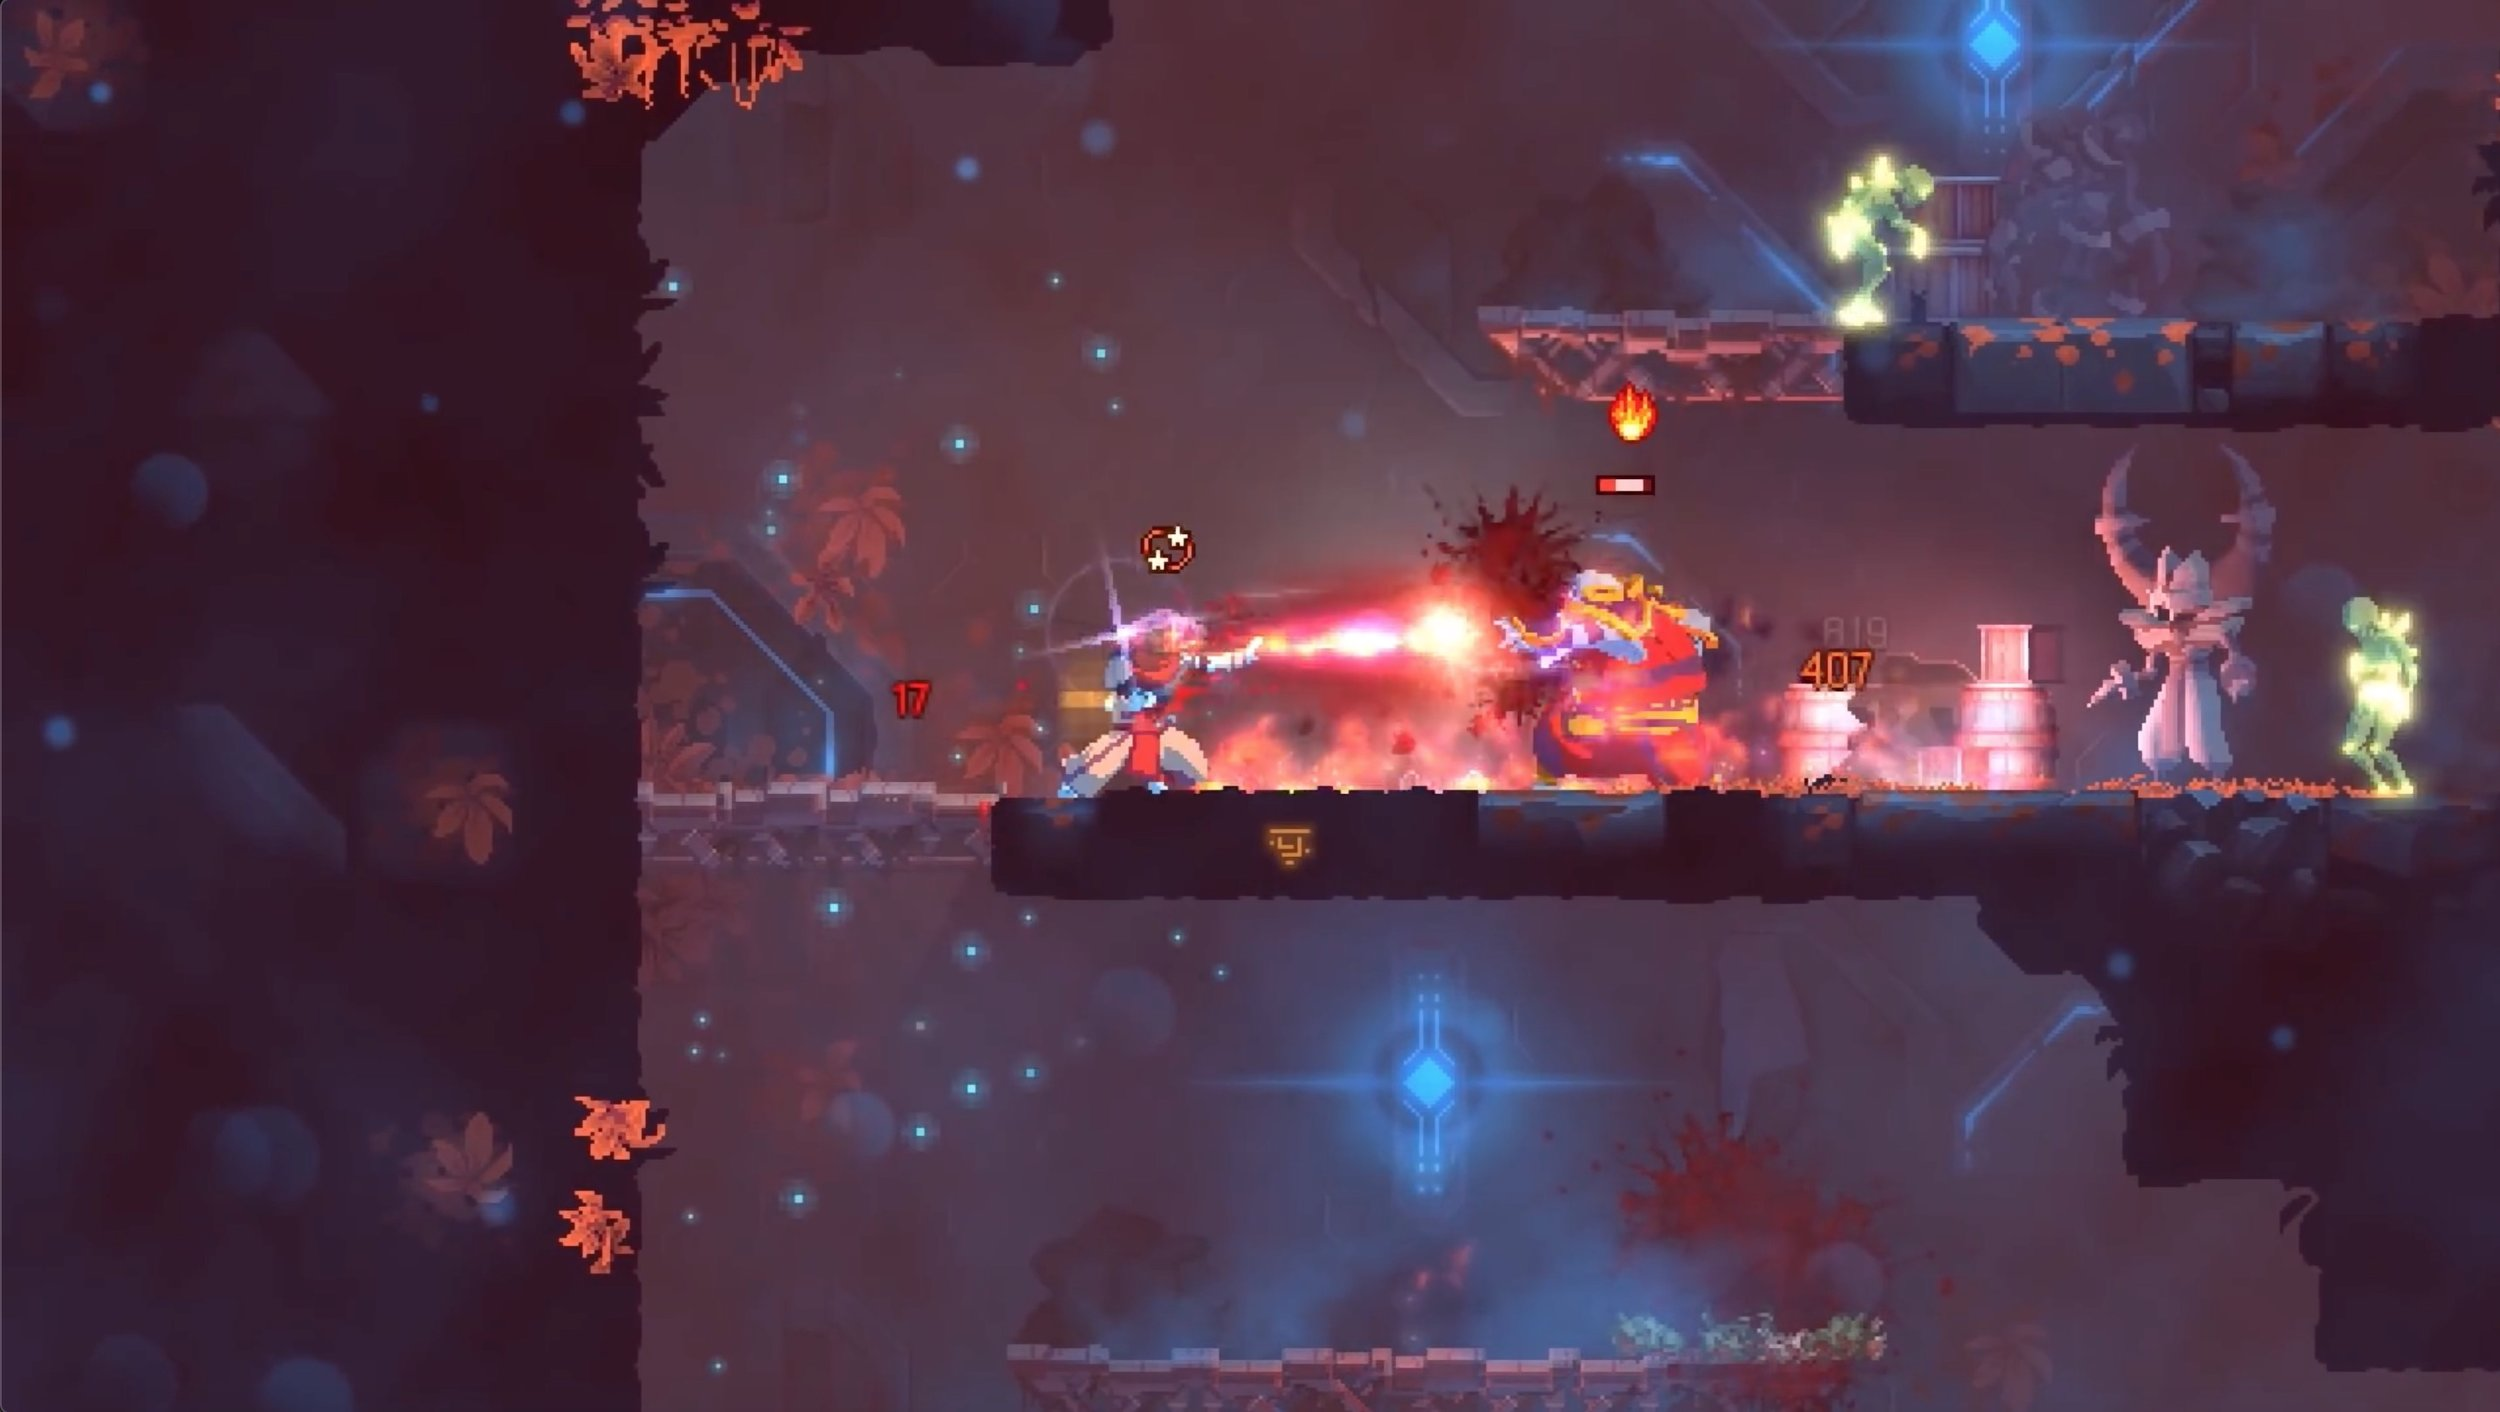 This shot has: the player using a fire weapon on the grappling hook enemy, a couple zombies on the periphery, and it's set in a new environment for this particular update.